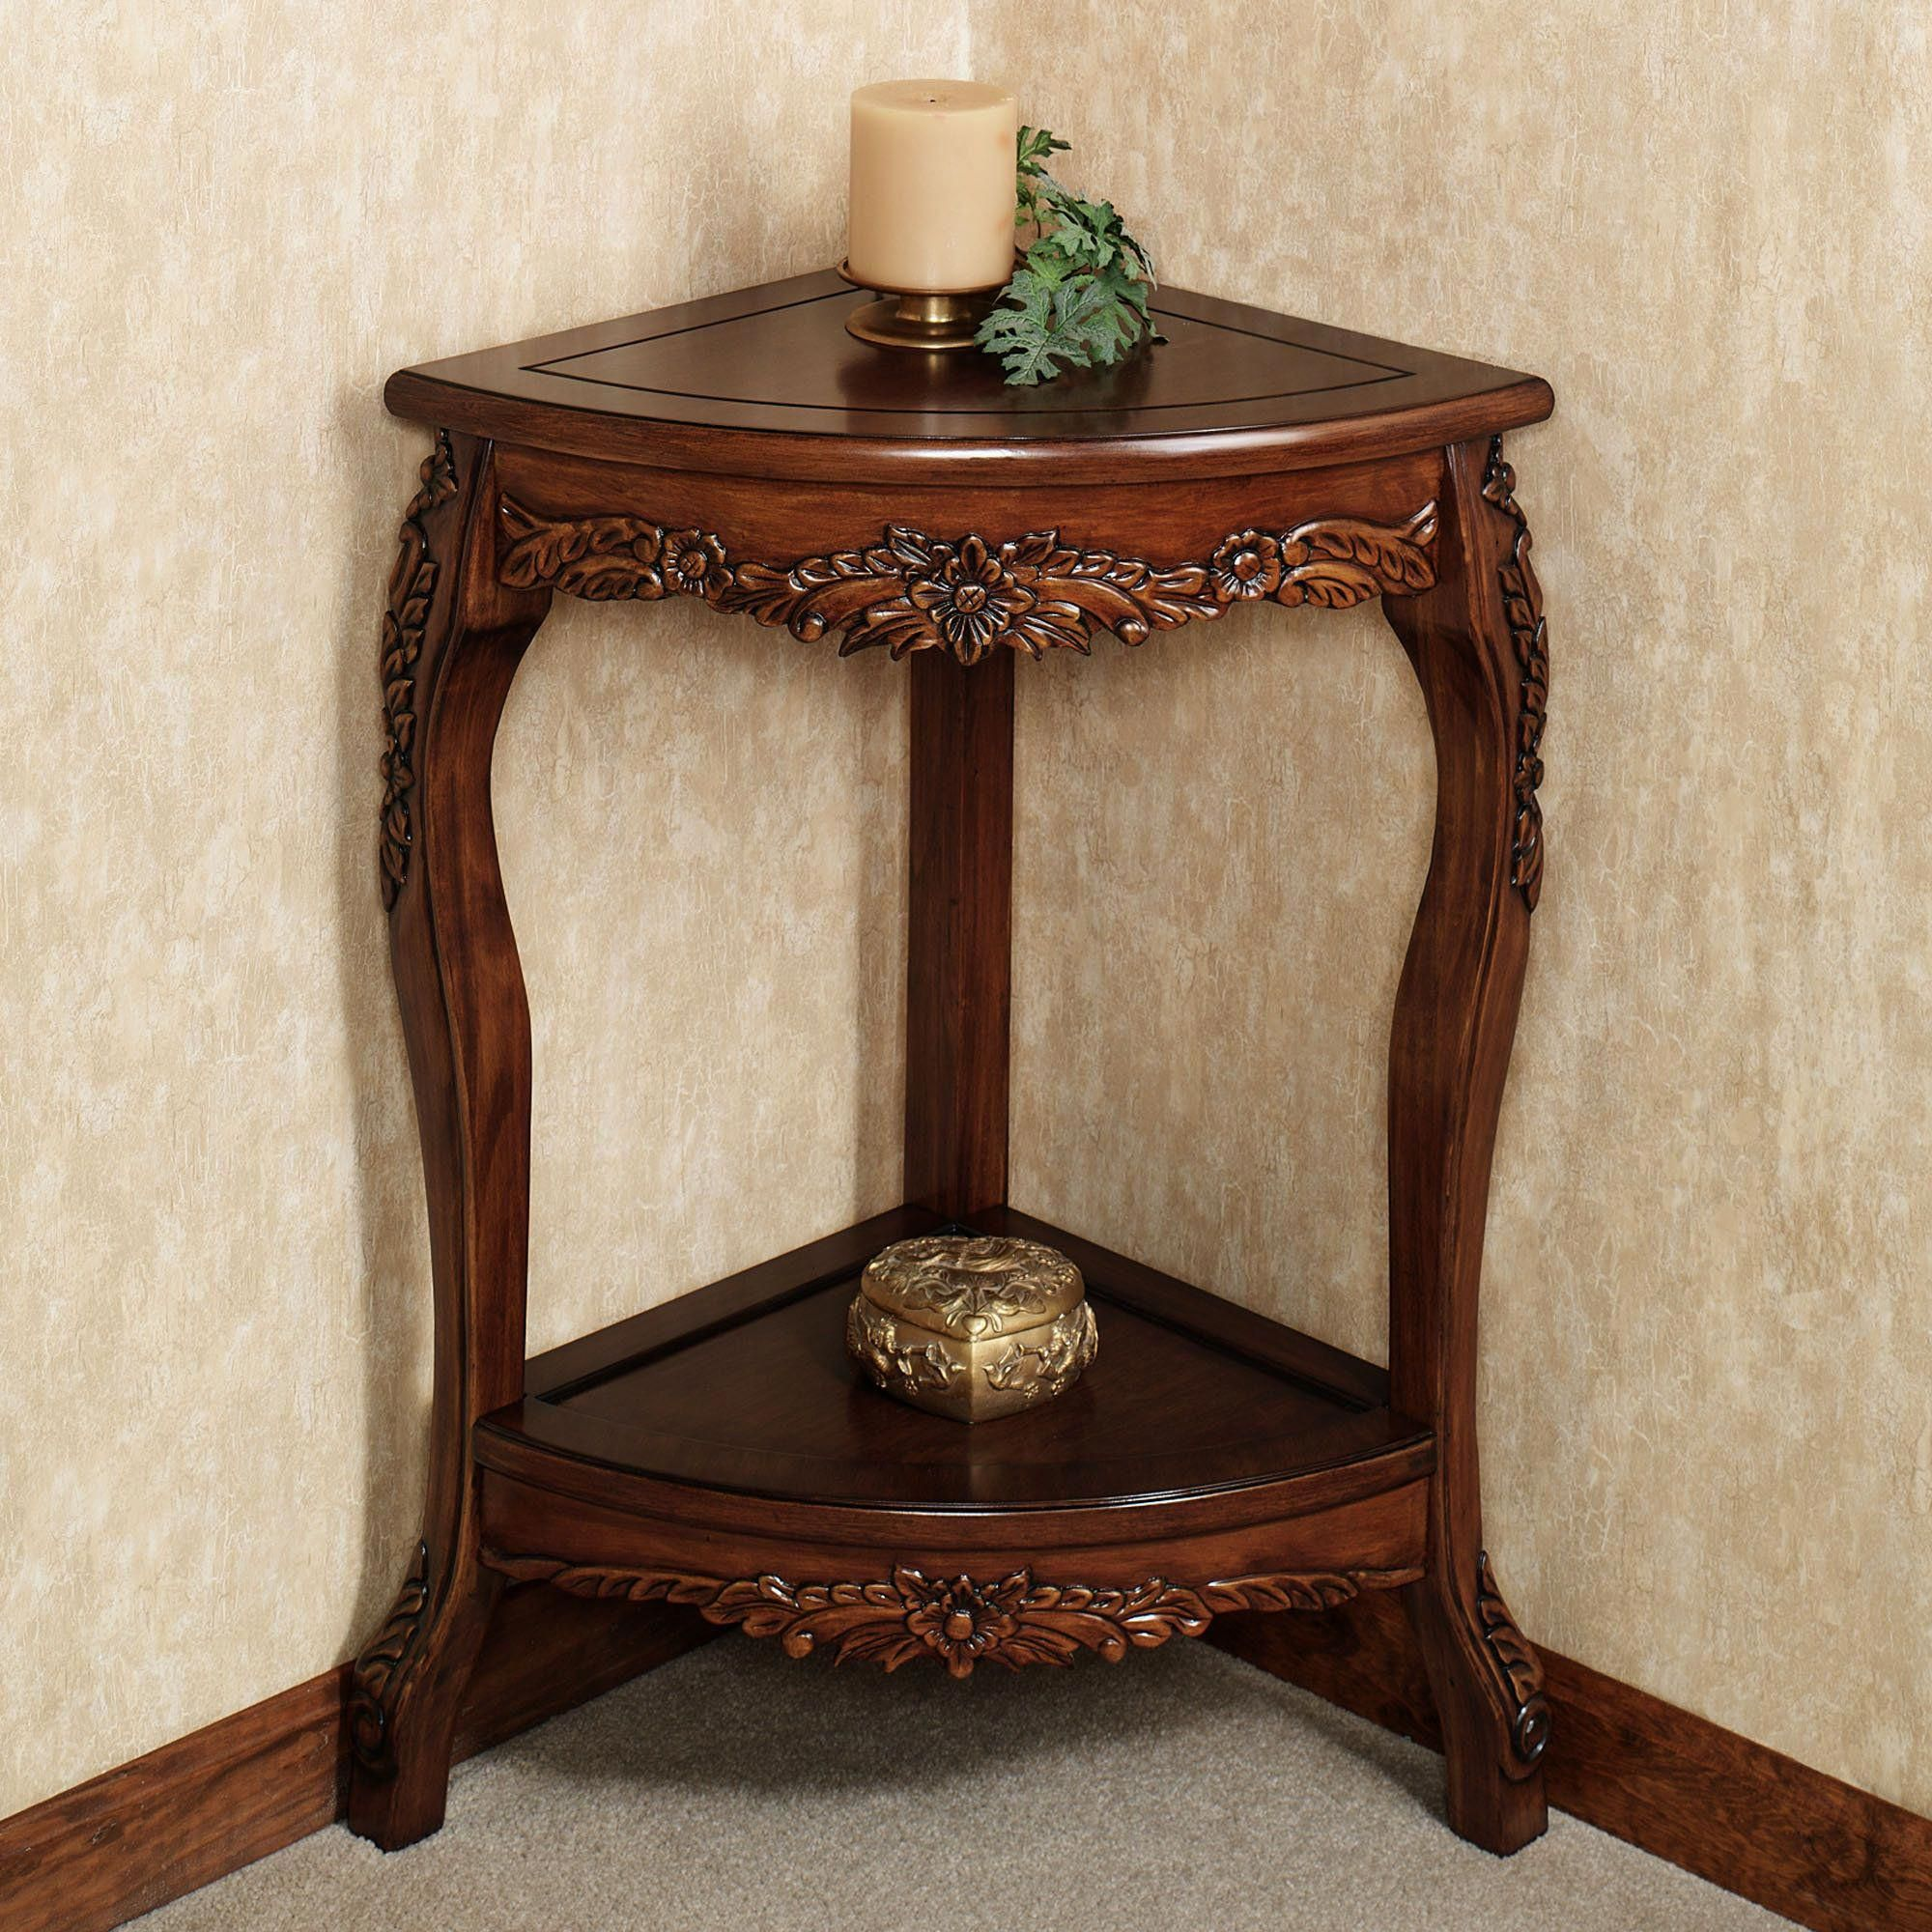 Various Options For Corner Accent Table Design Vitalofc Decor Bohemiandecor In 2020 Corner Table Designs Corner Accent Table Accent Table Decor